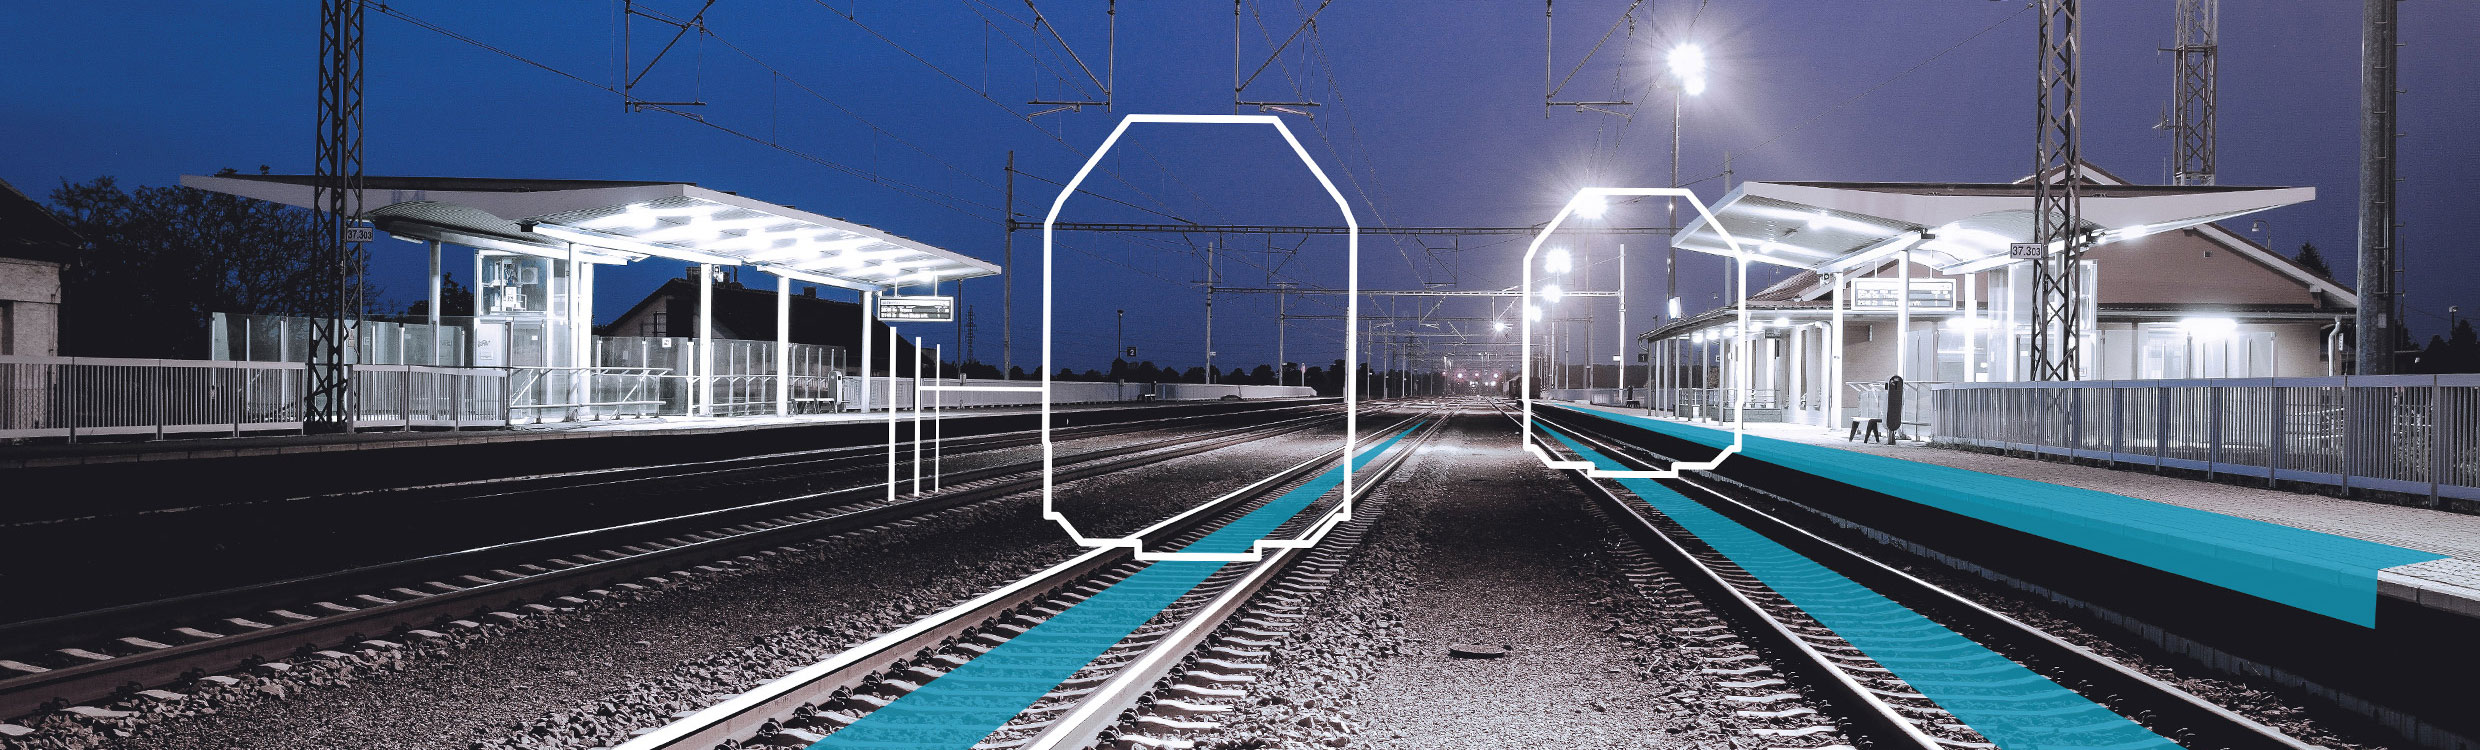 Rail_Home_Header